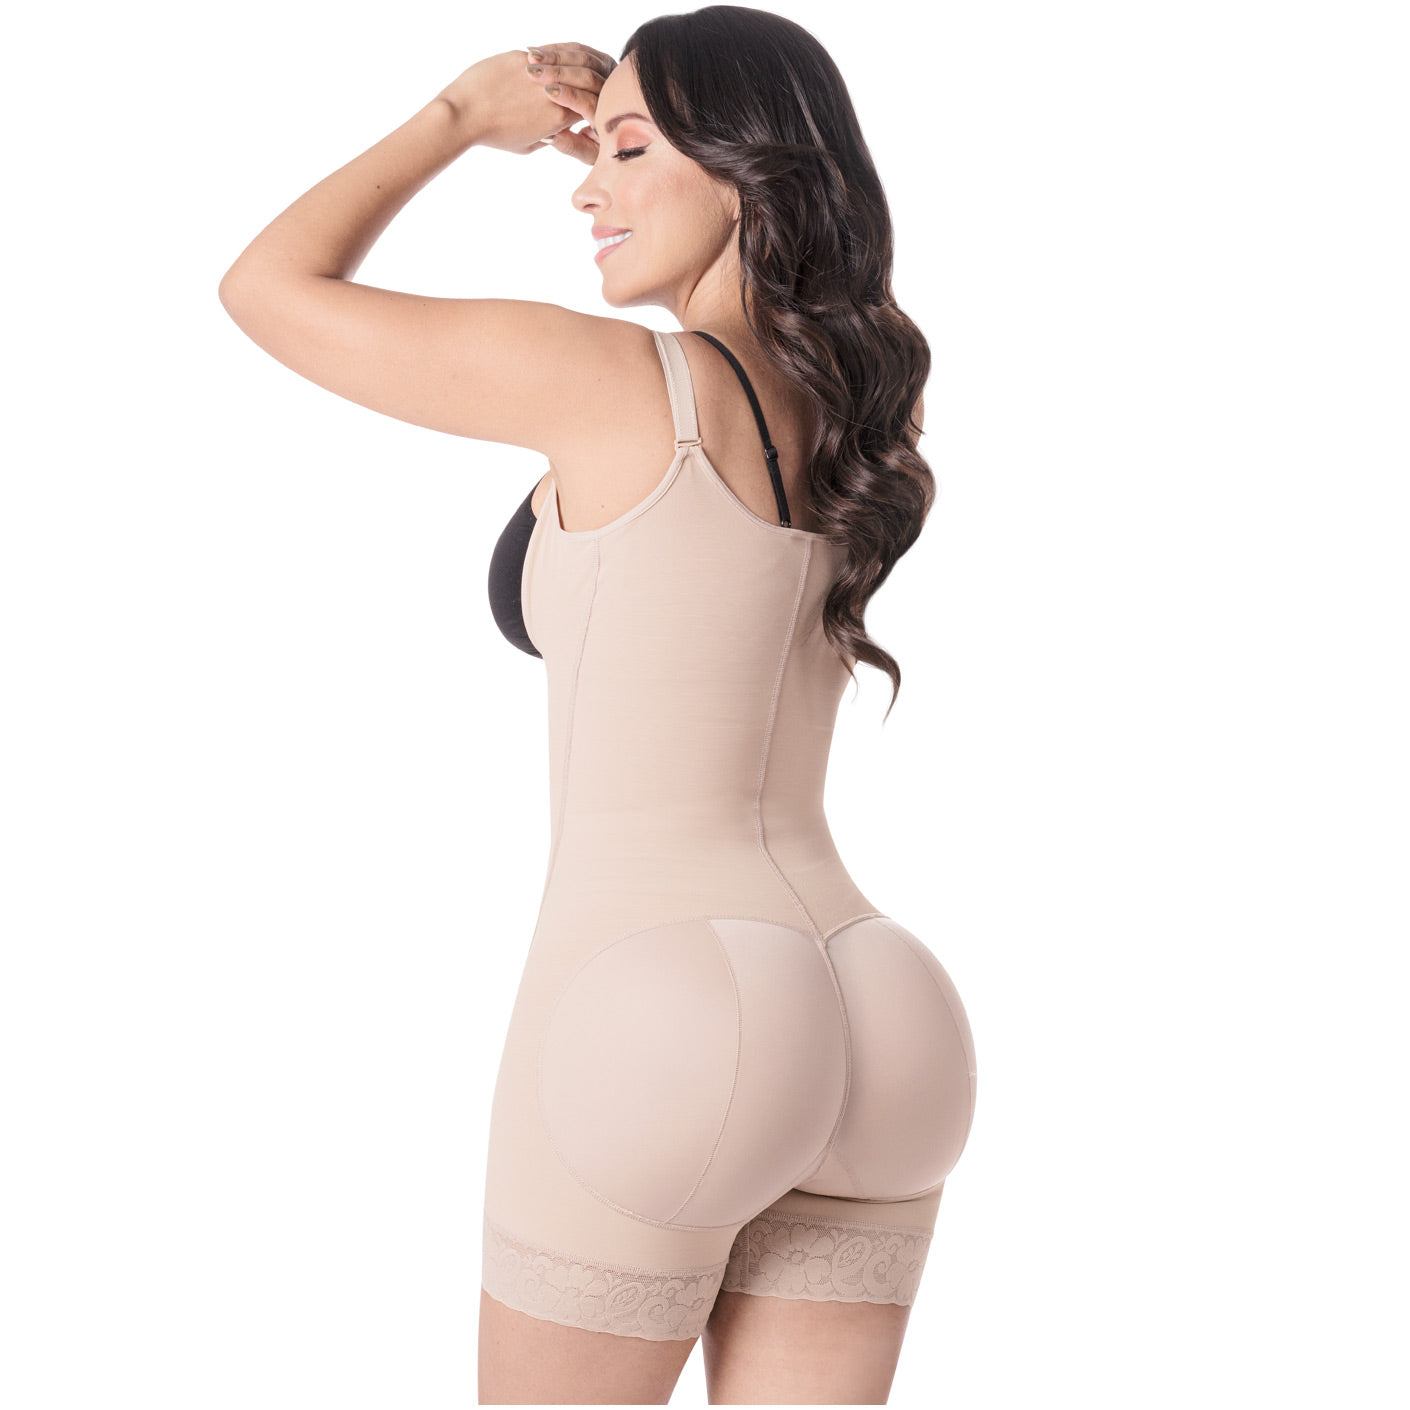 Salome 0216 Women Butt Lifter Colombian Fajas